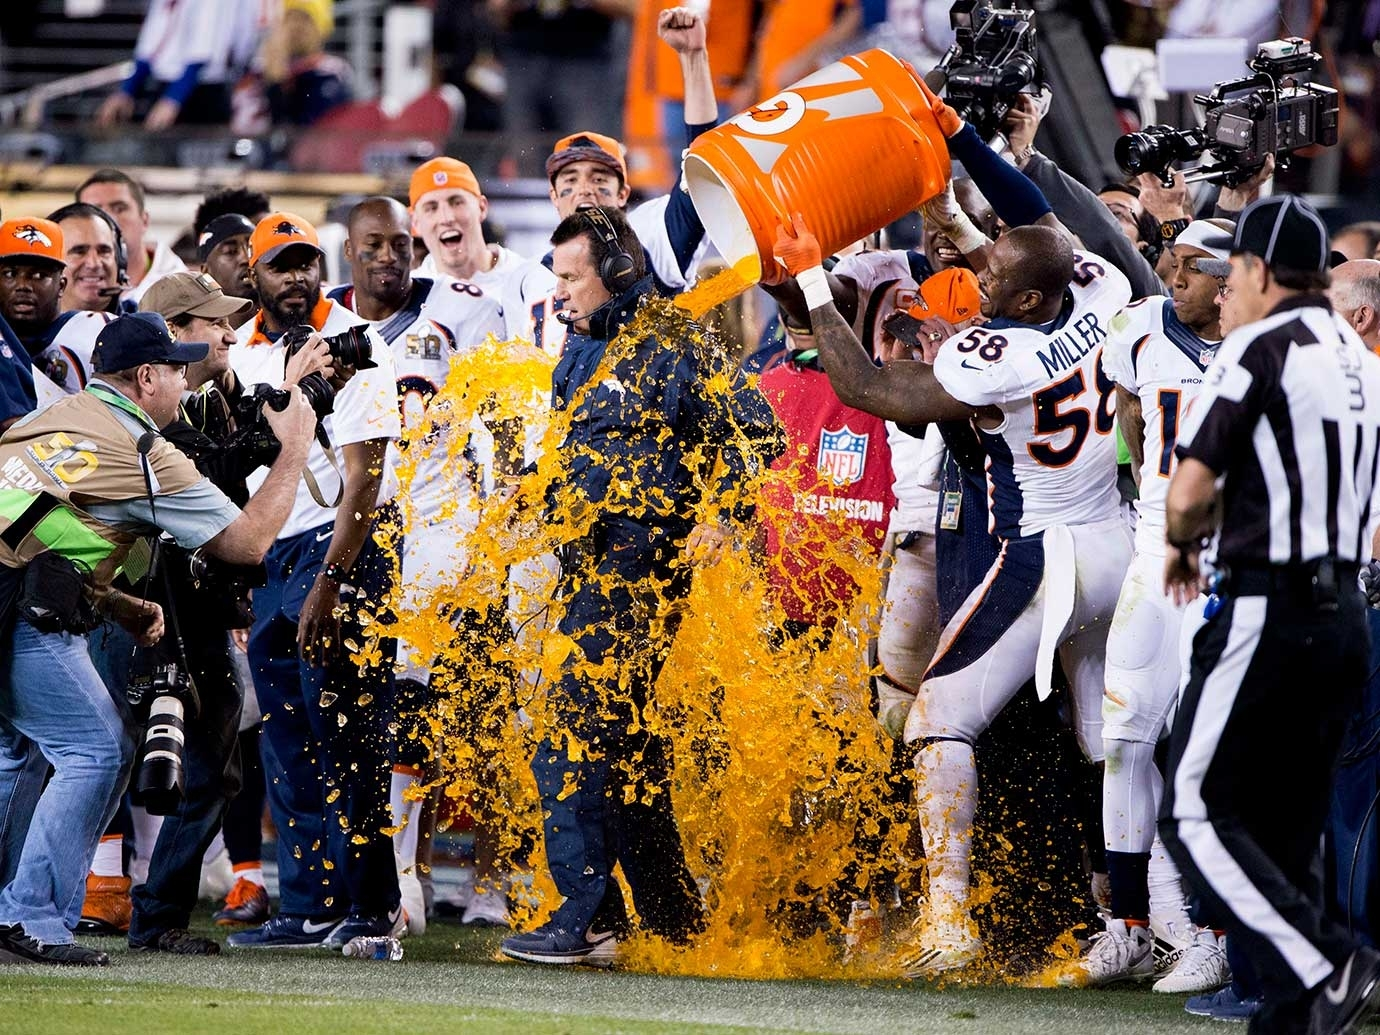 Super Bowl 50: Reviewing Cbs's Broadcast Of Broncos-Panthers intended for Broncos Super Bowl 50